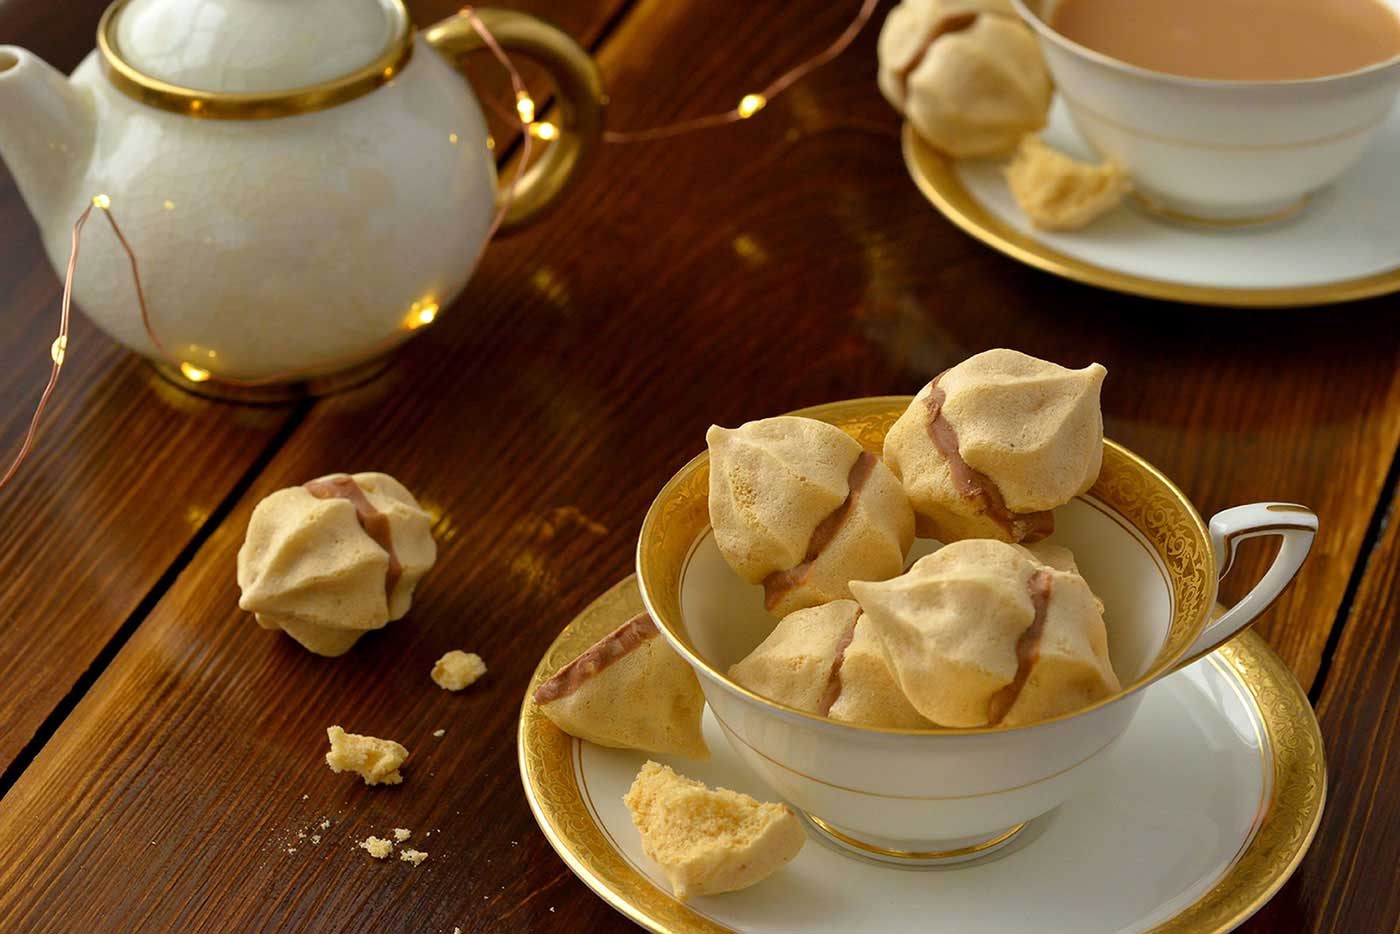 Salted Caramel Meringue Crowns